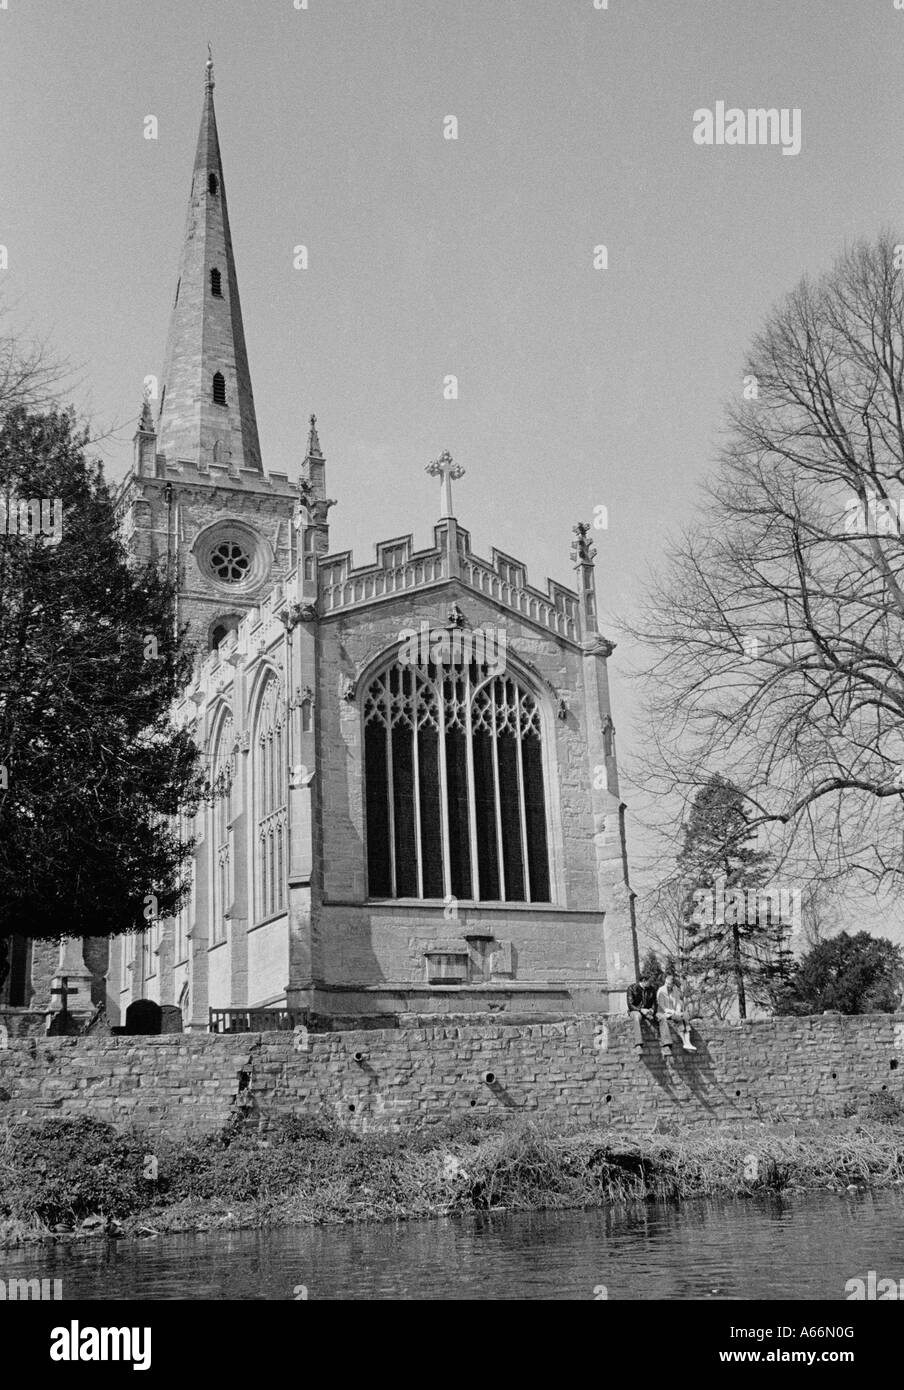 Holy Trinity Parish Church, Stratford Upon Avon, UK 2004 : View from River Avon of church where William Shakespeare - Stock Image